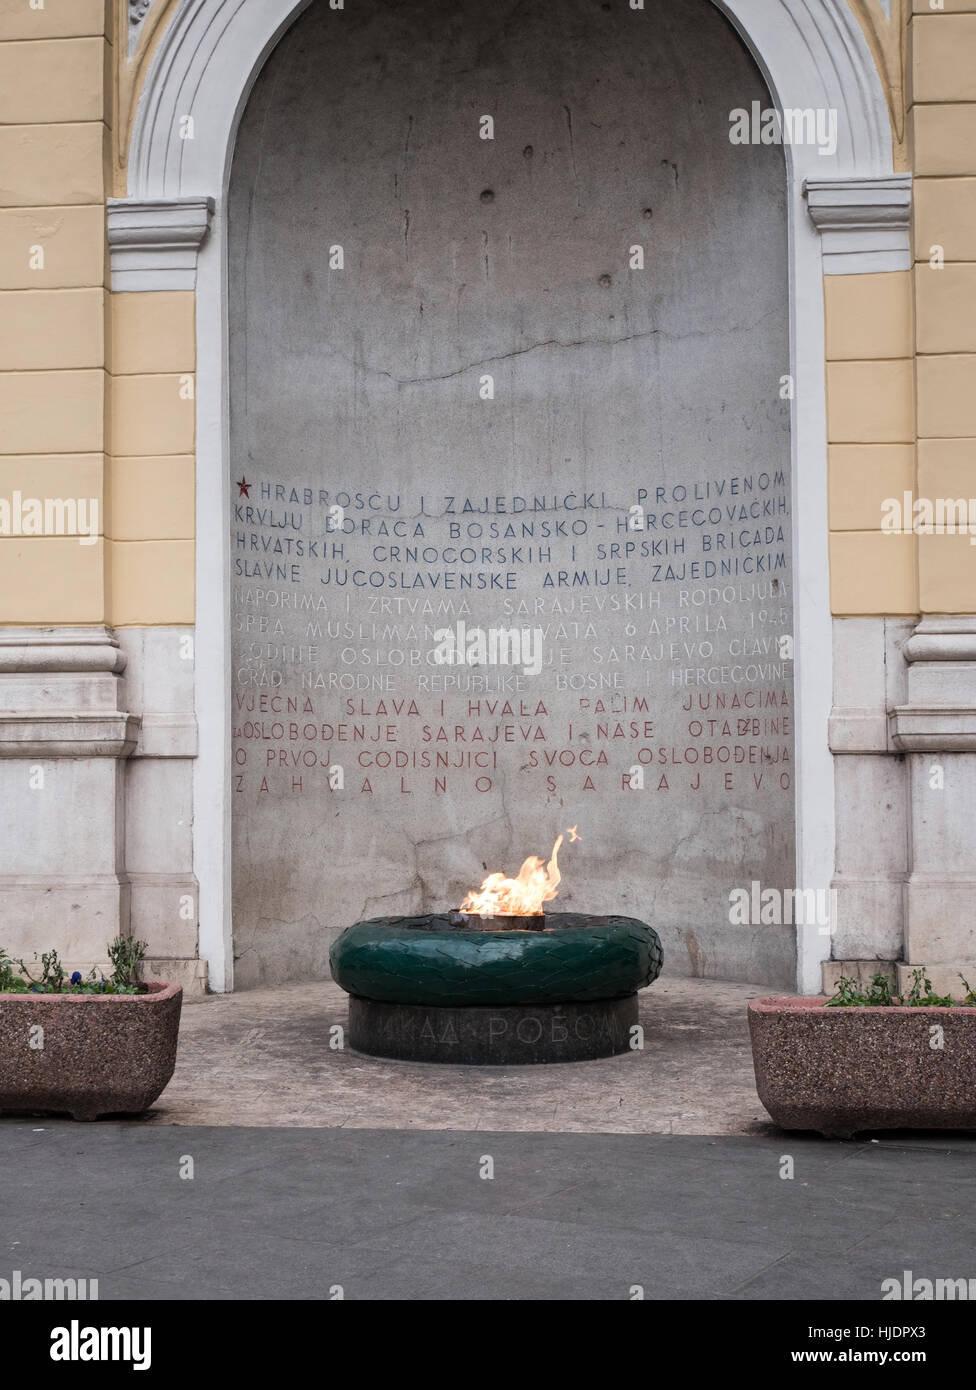 The Eternal Flame monument in Sarajevo , Bosnia and Herzegovina - Stock Image